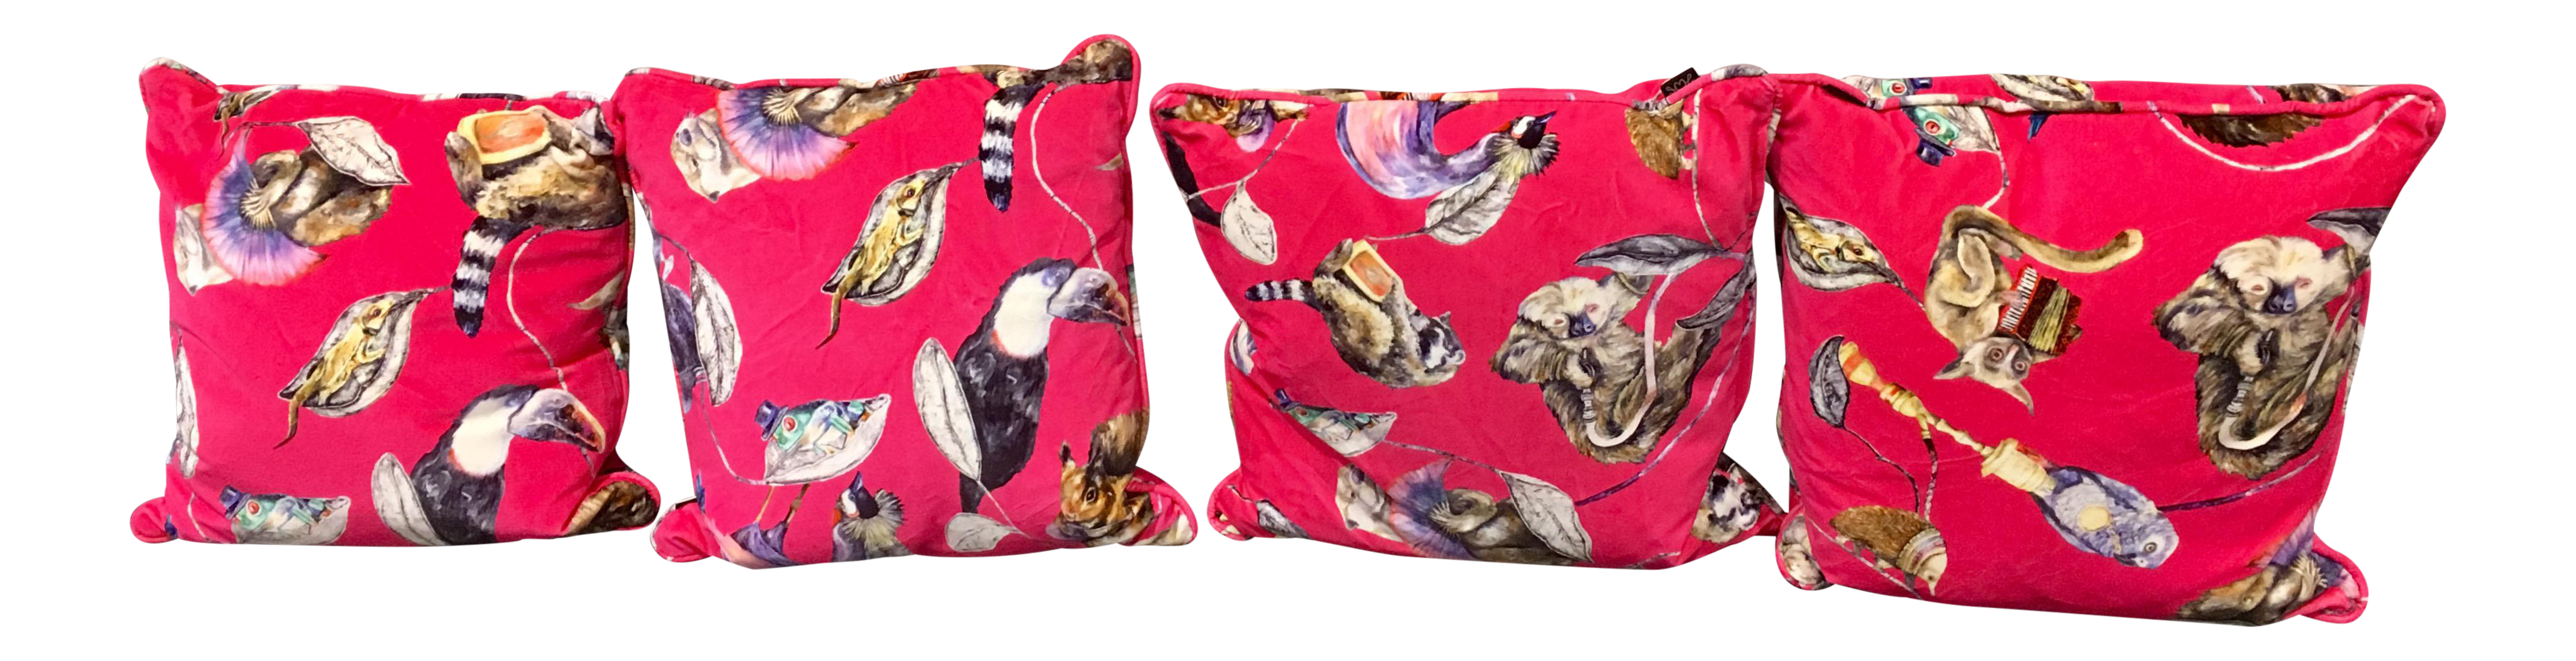 house of hackney empire throw pillows set of 4